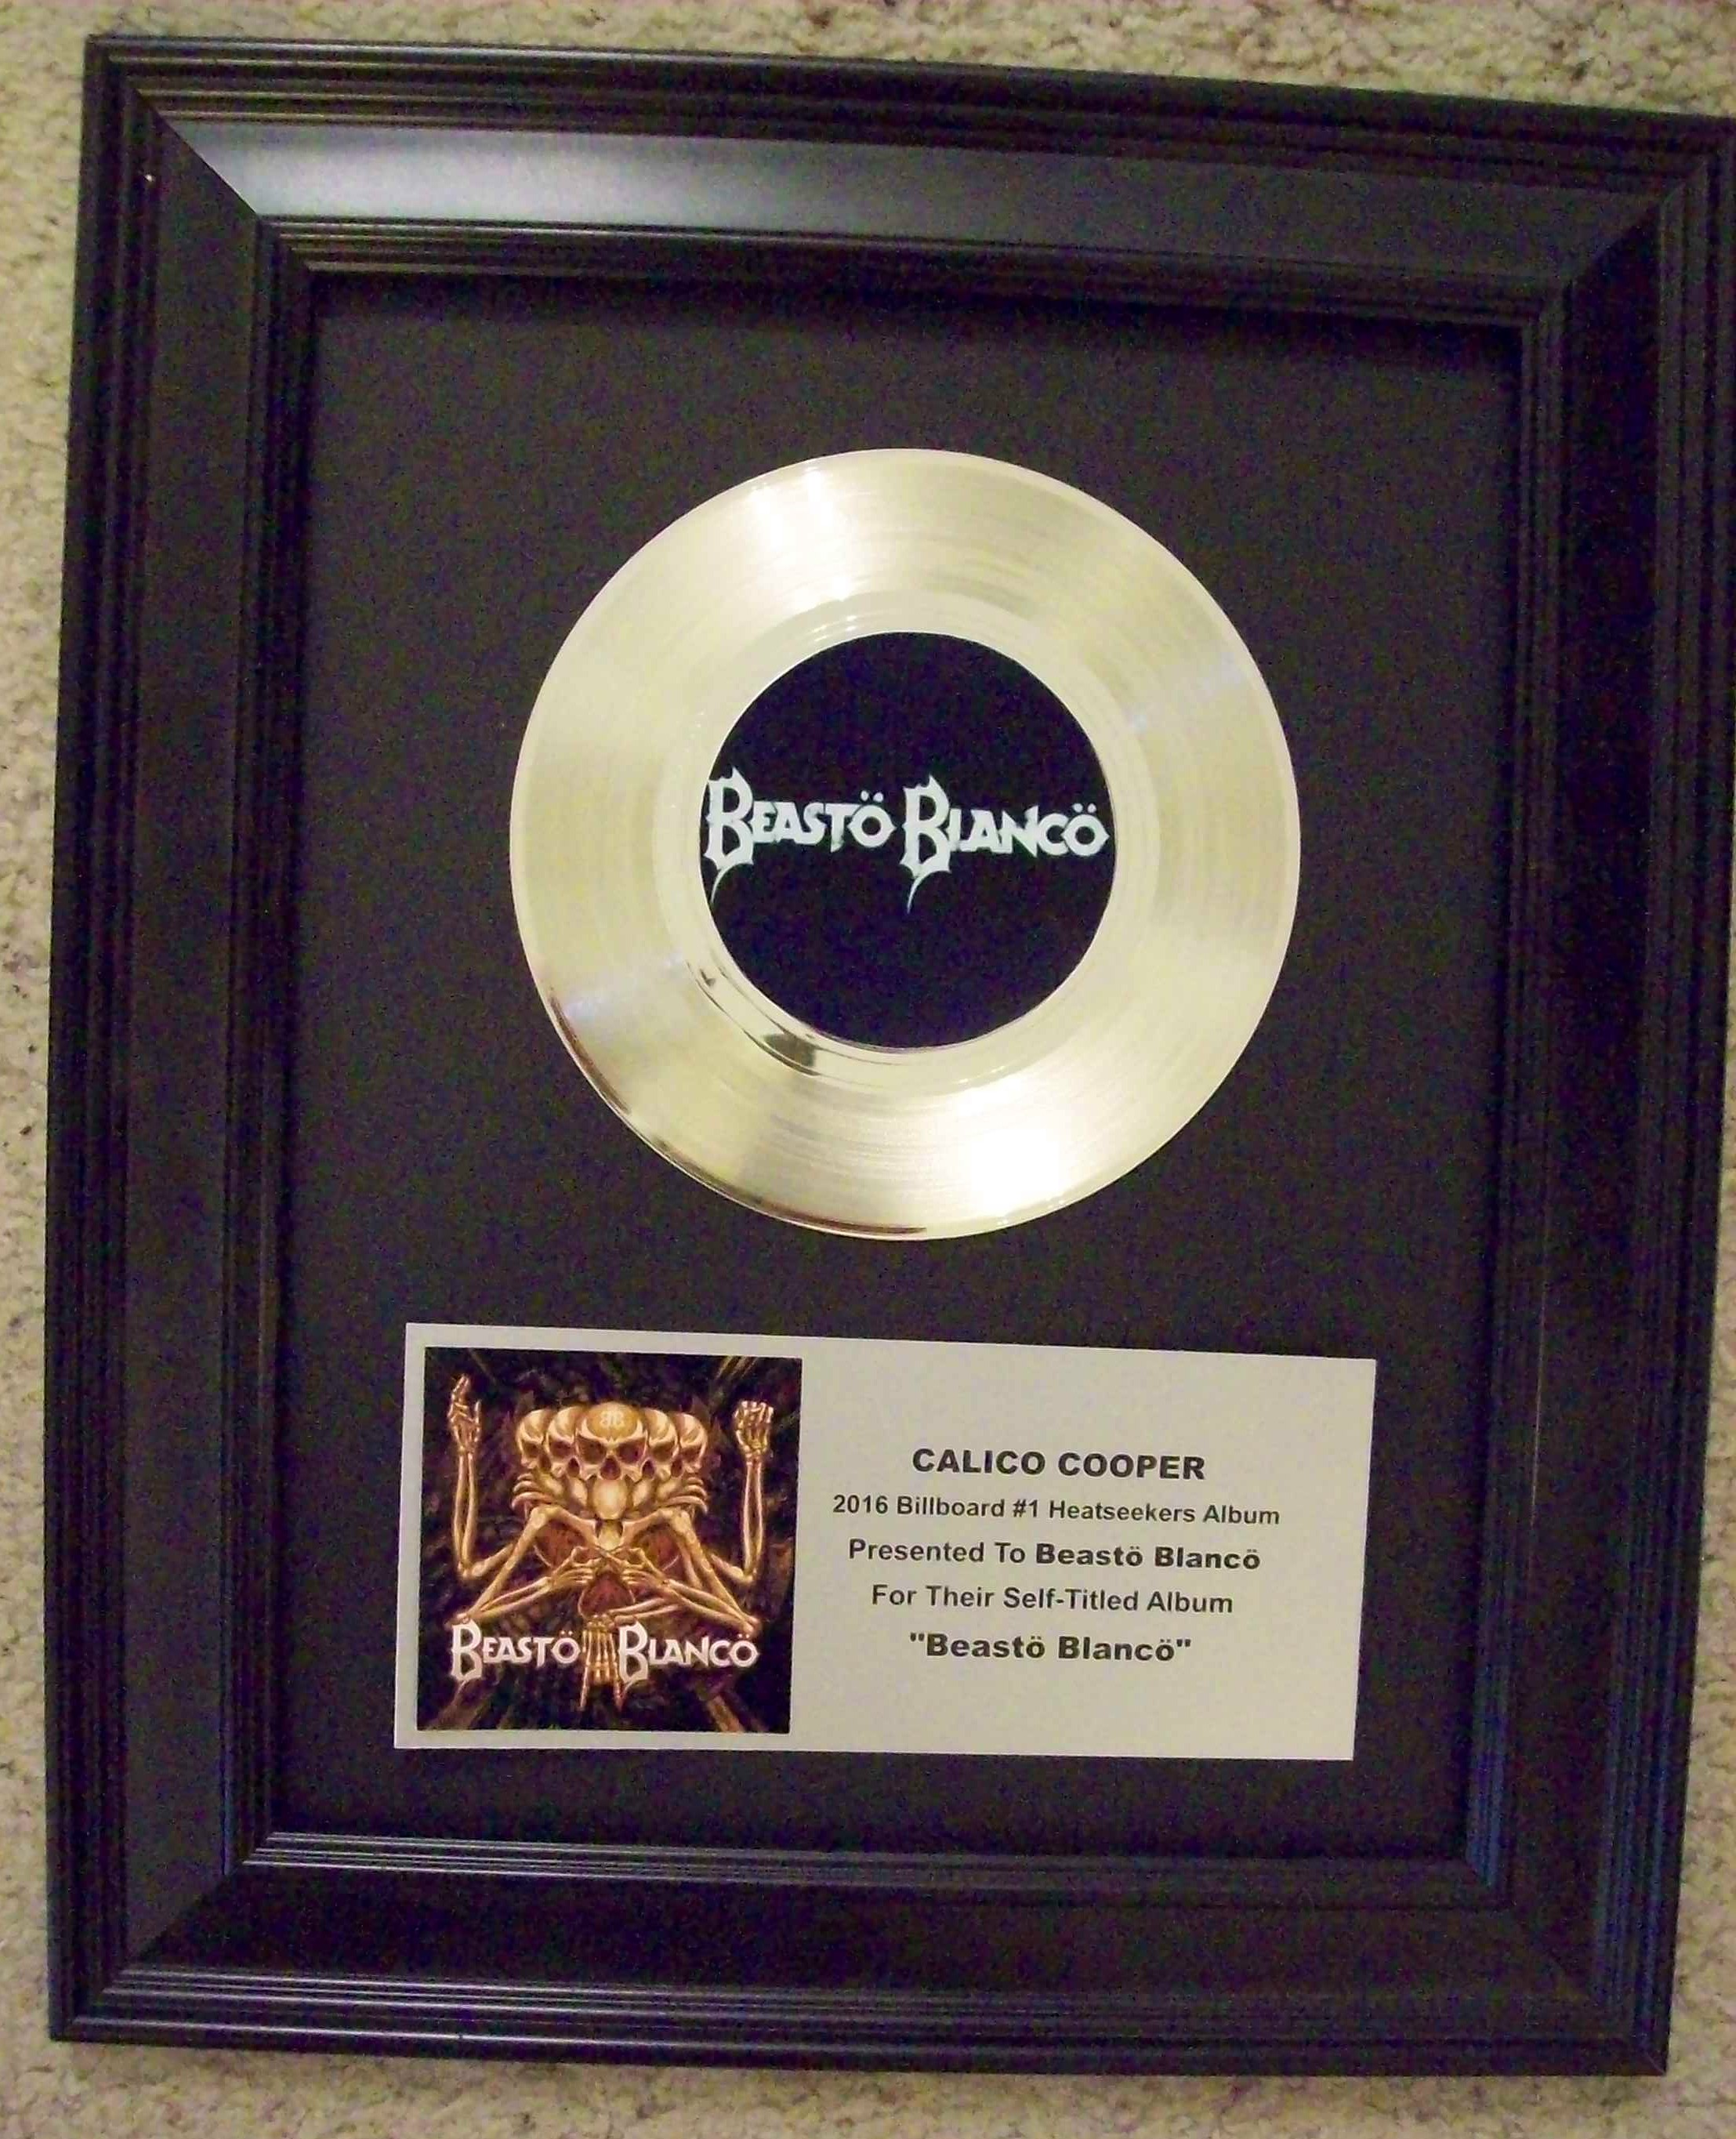 "Image for Custom Platinum 45 7"" Record Award/Trophy"